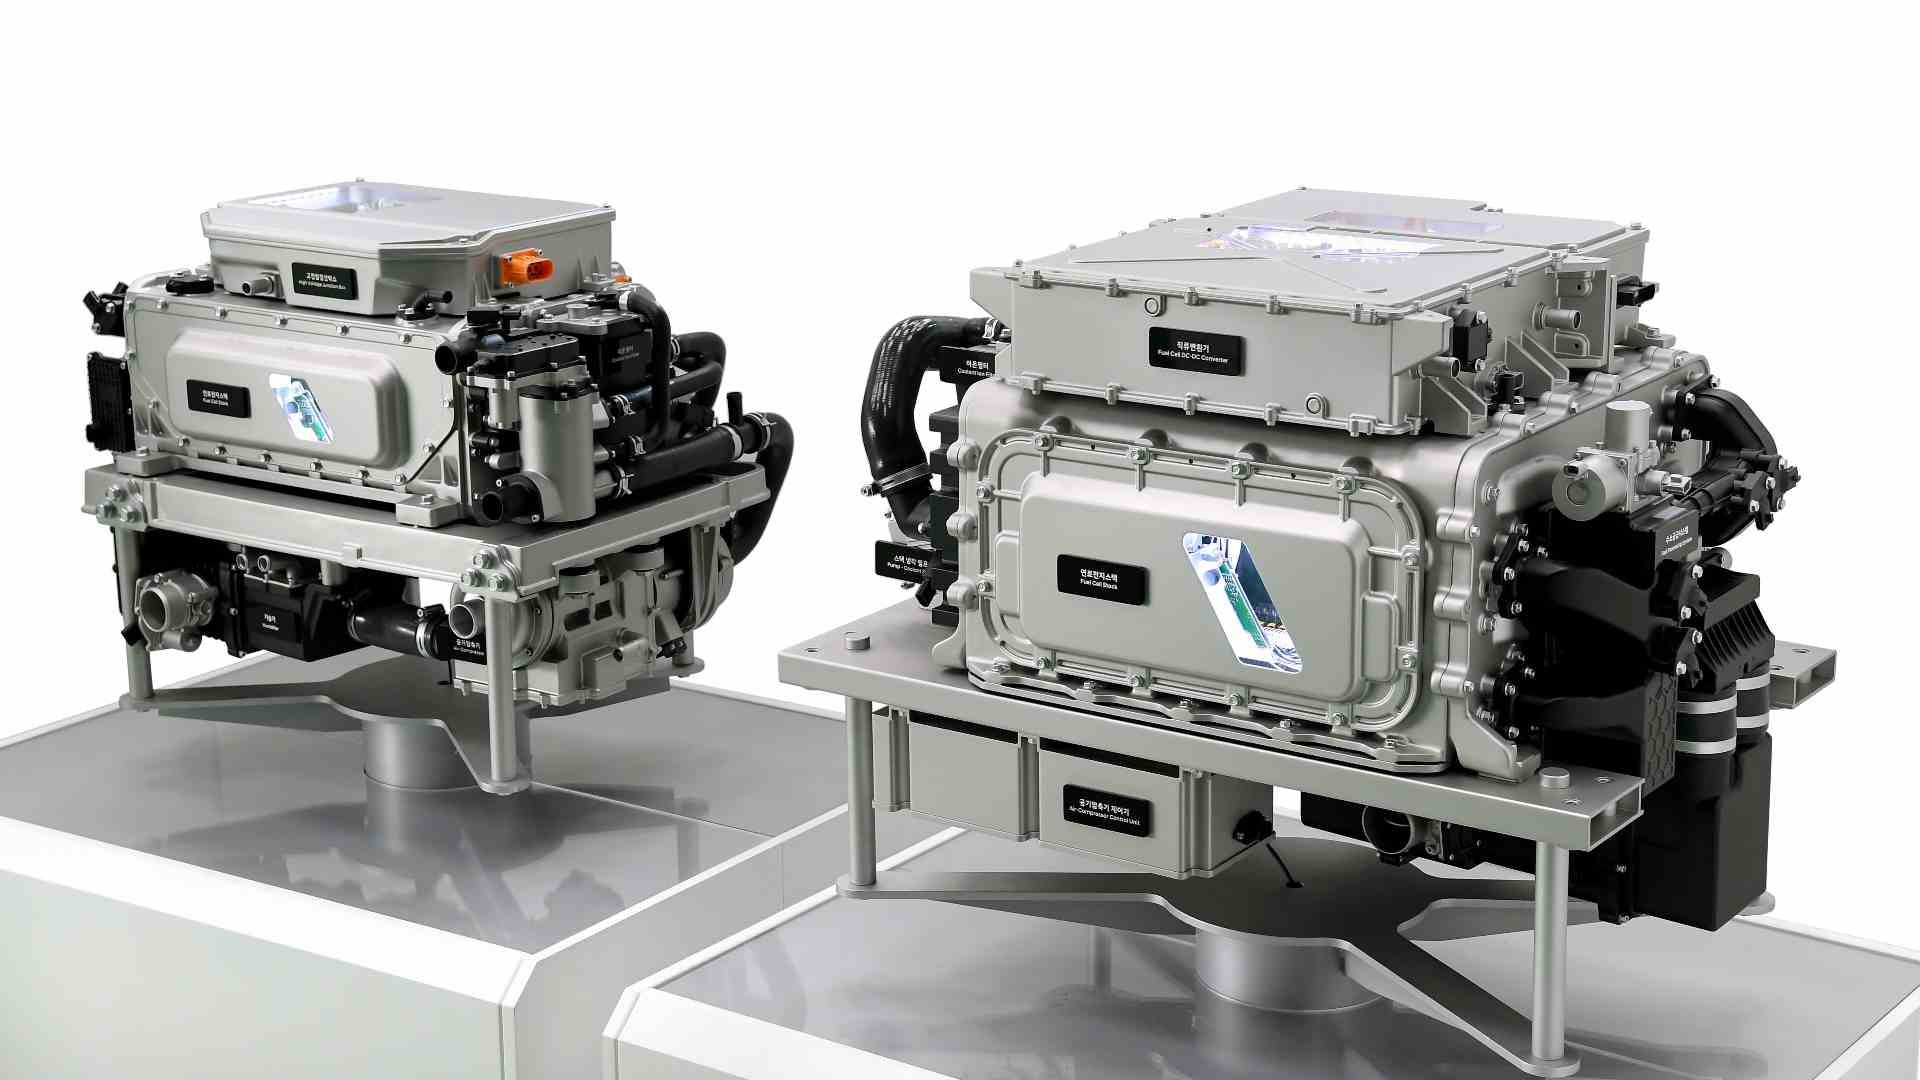 The third-generation fuel-cell powertrain is expected to debut in the updated Hyundai Nexo in 2023. Image: Hyundai